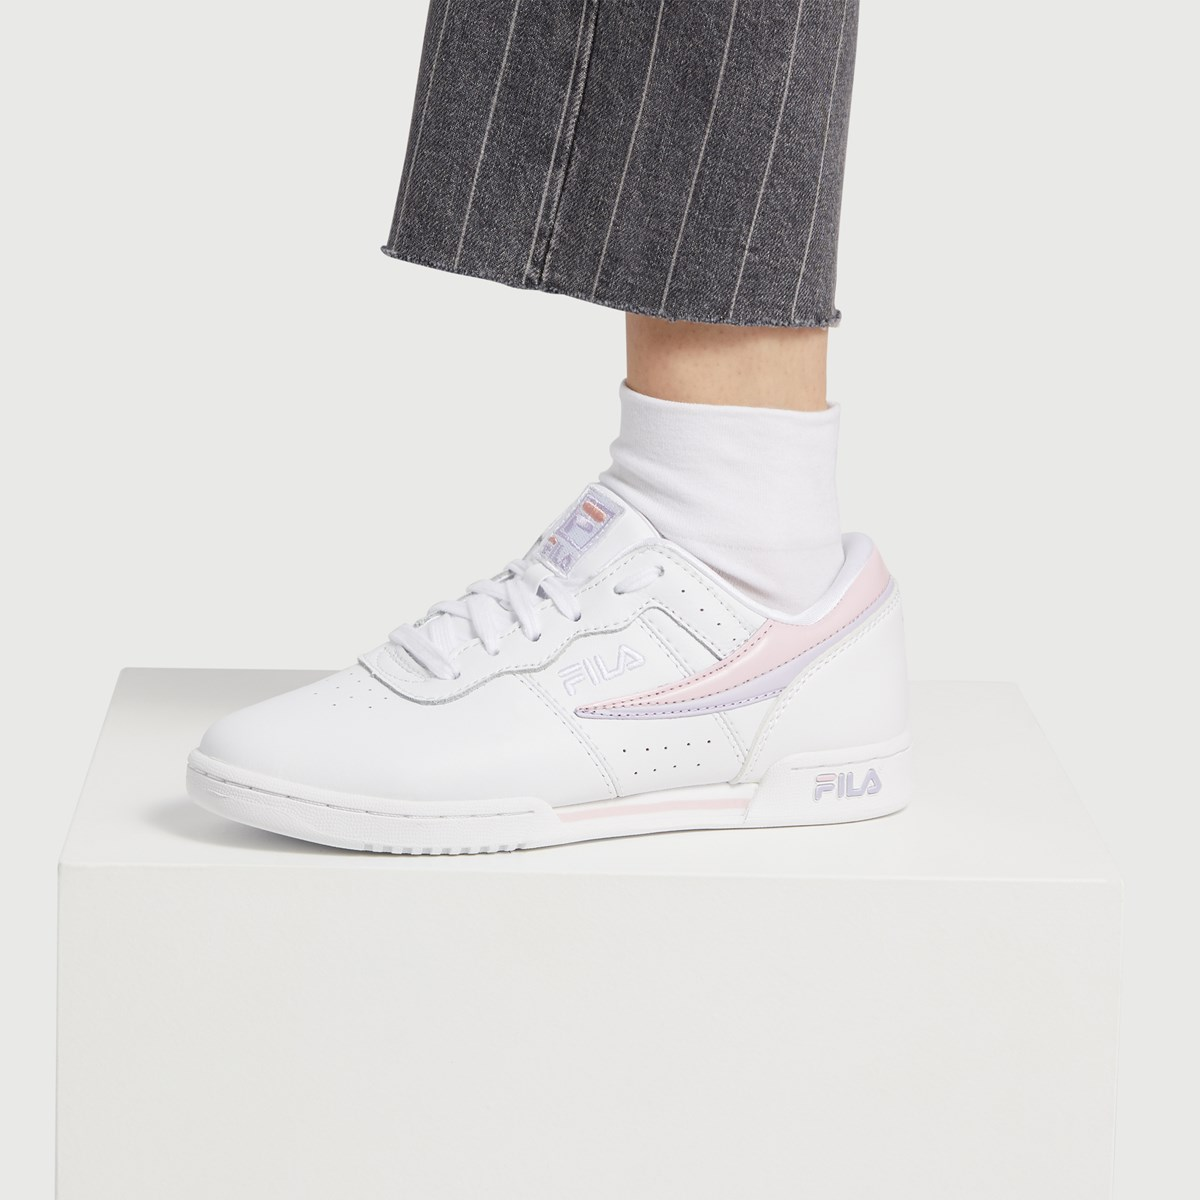 Women's Original Fitness Sneakers in White